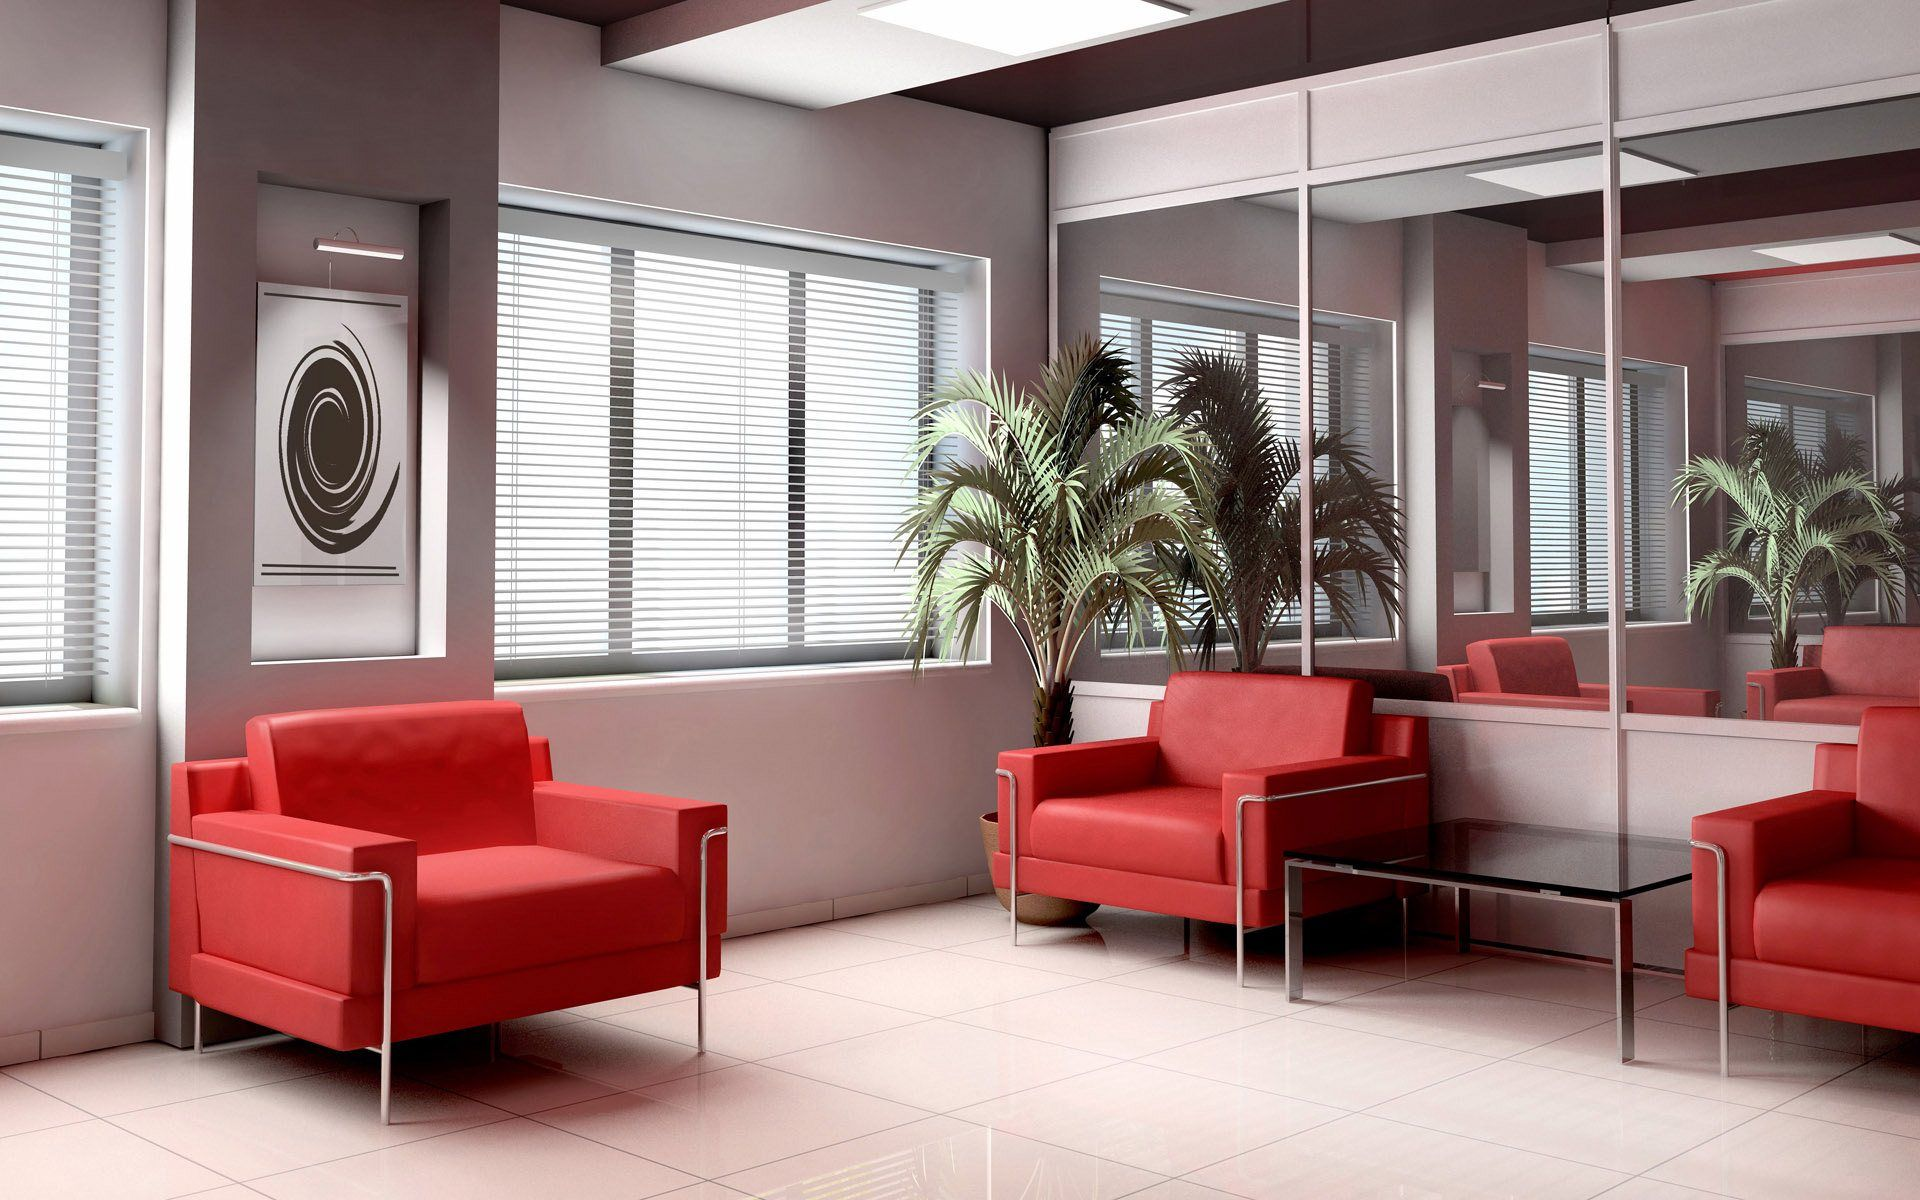 Office Interior With Red Sofa Red Sofa Living Room Living Room Designs Living Room Interior